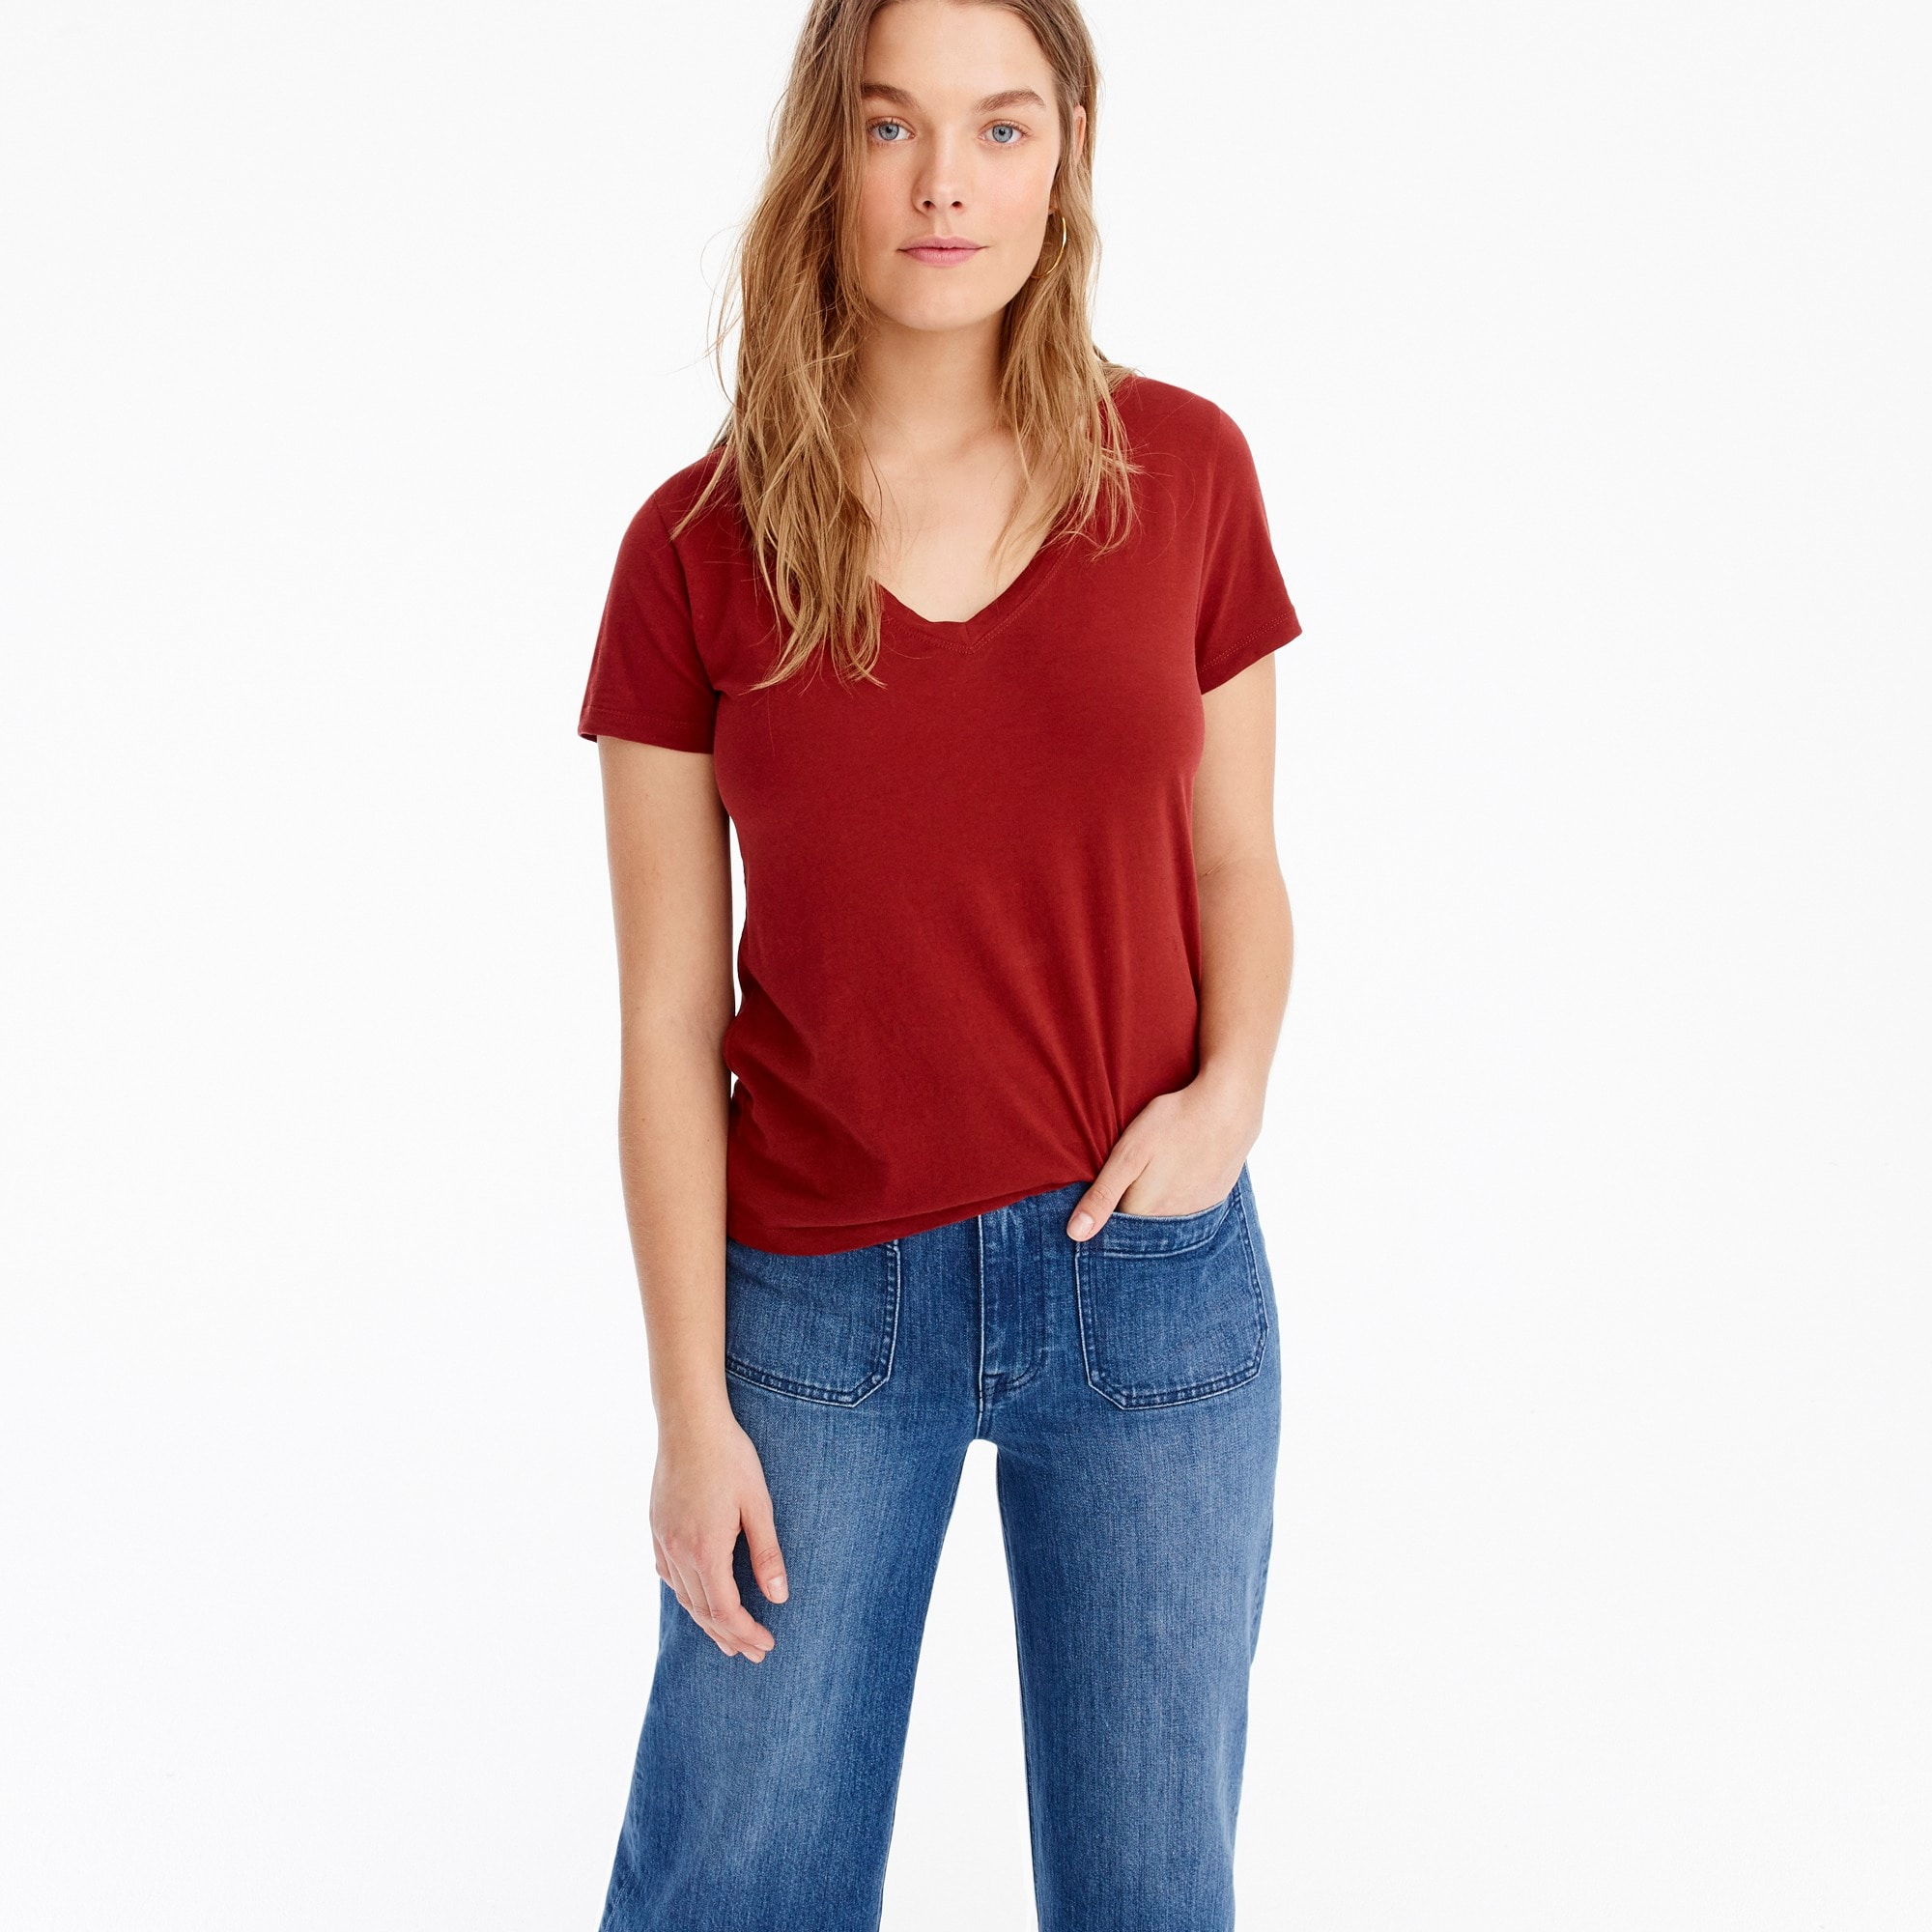 J.Crew Mercantile V-neck broken-in T-shirt women t-shirts & tank tops c